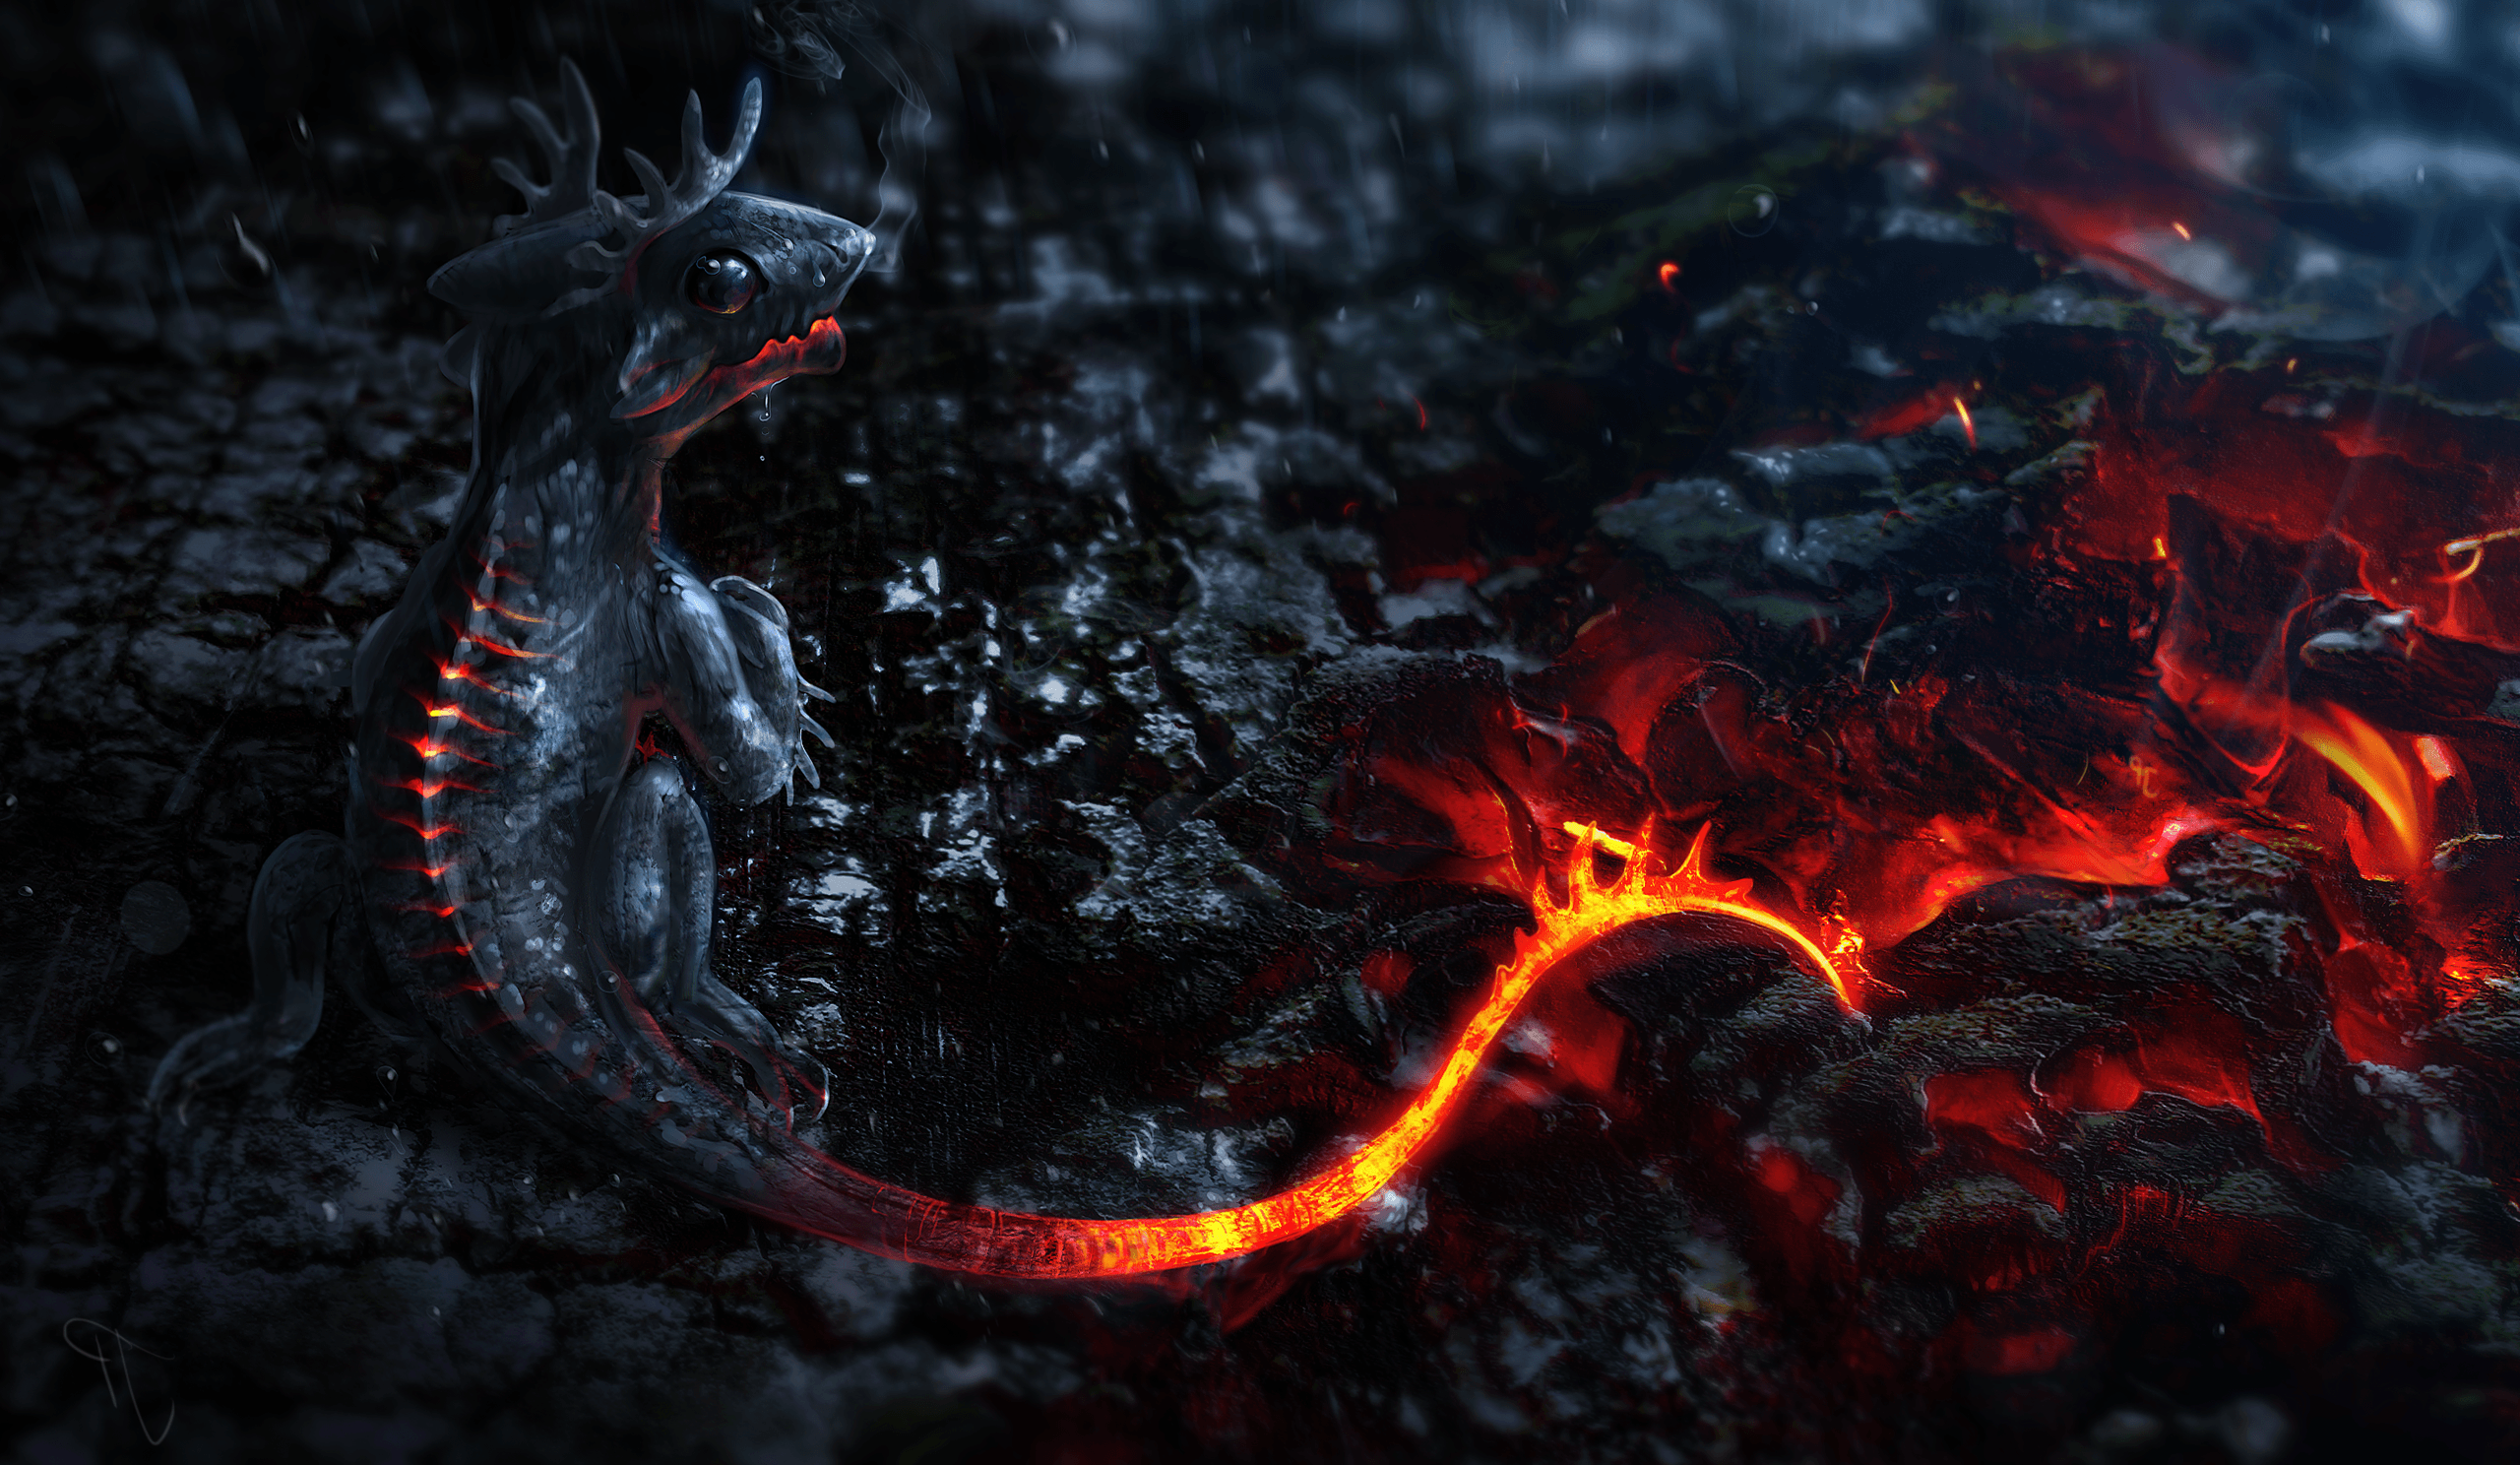 Magma Wallpapers, 4K Ultra HD Magma Wallpapers for Free, Backgrounds